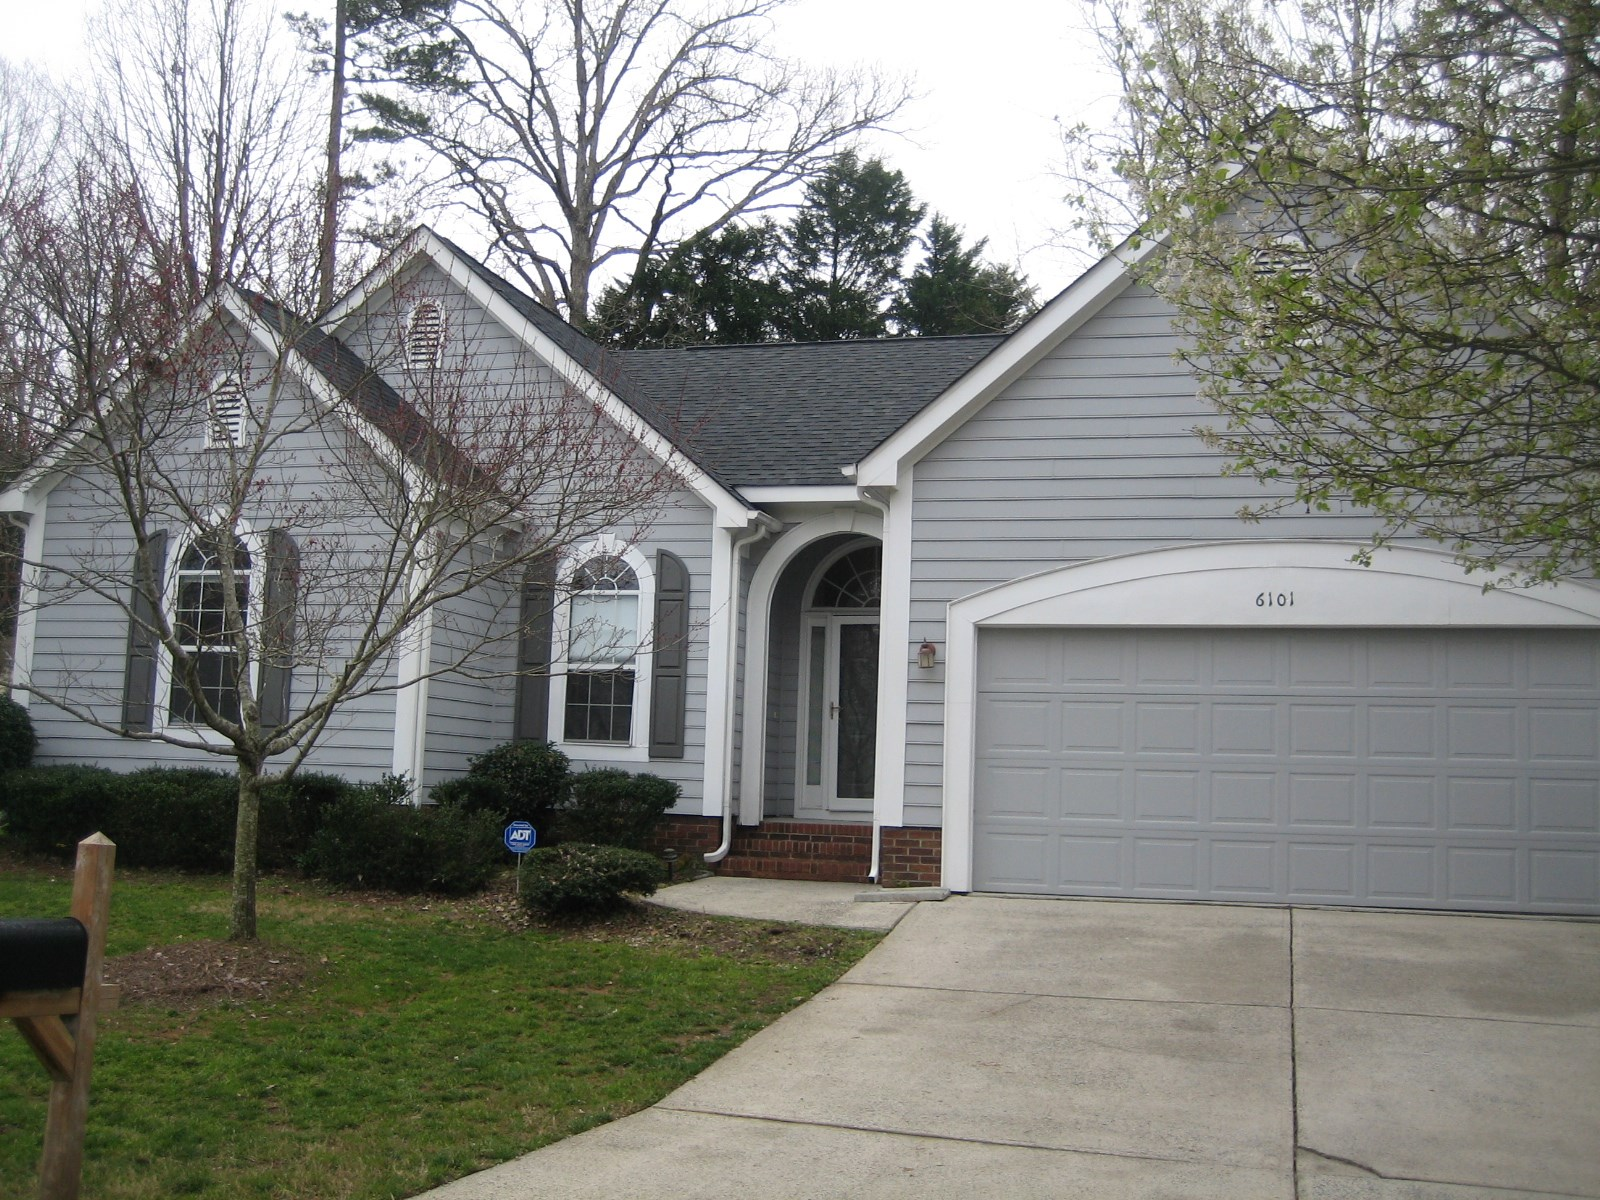 Charming Ranch Home for Sale in Charlotte NC